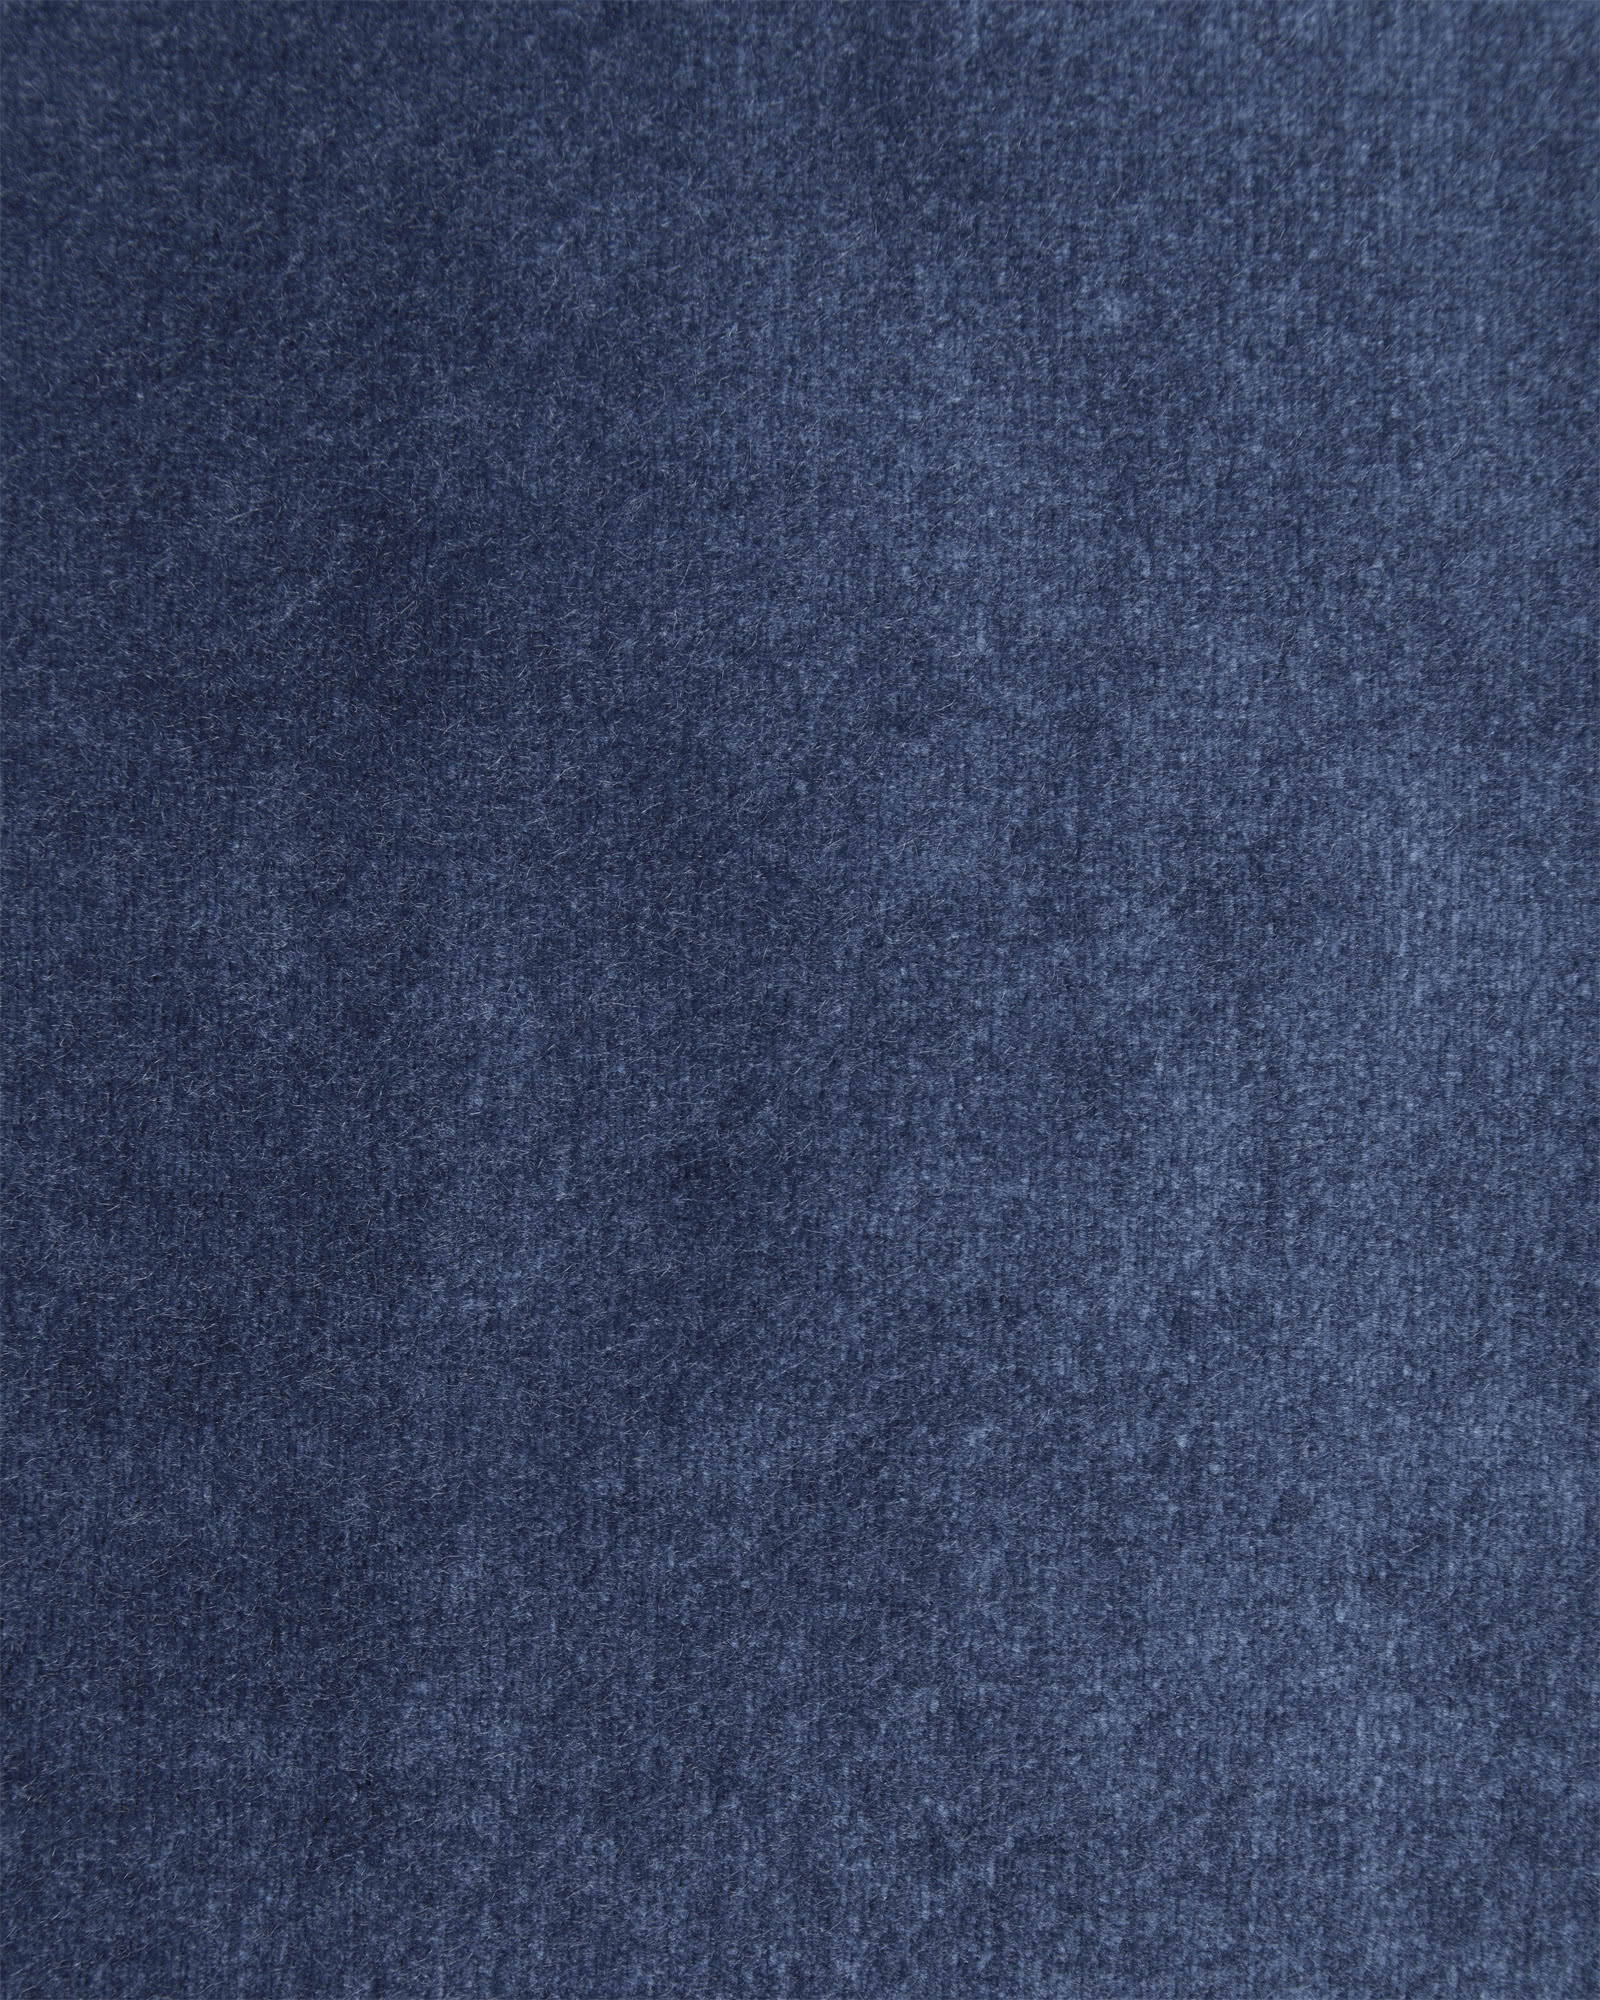 Fabric by the Yard – Perennials® Performance Velvet, Denim